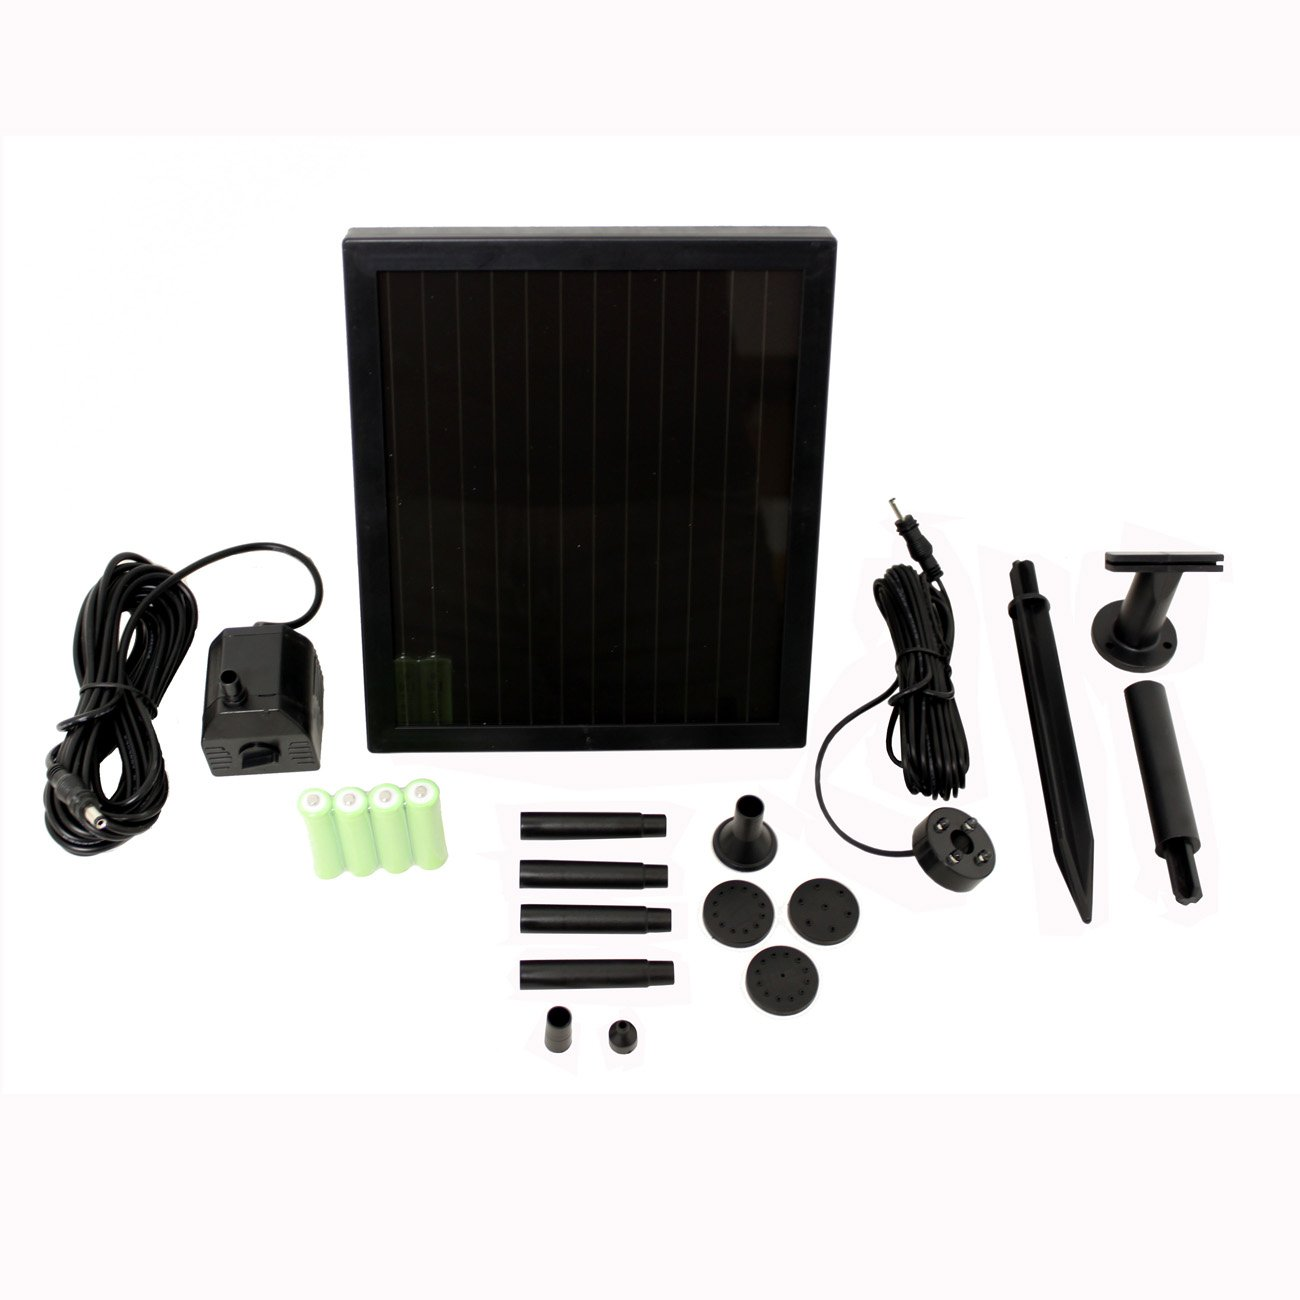 1.4w Watt Solar Water Pump Garden Pool Pond Kit System with Battery, LED Lights and Tubes